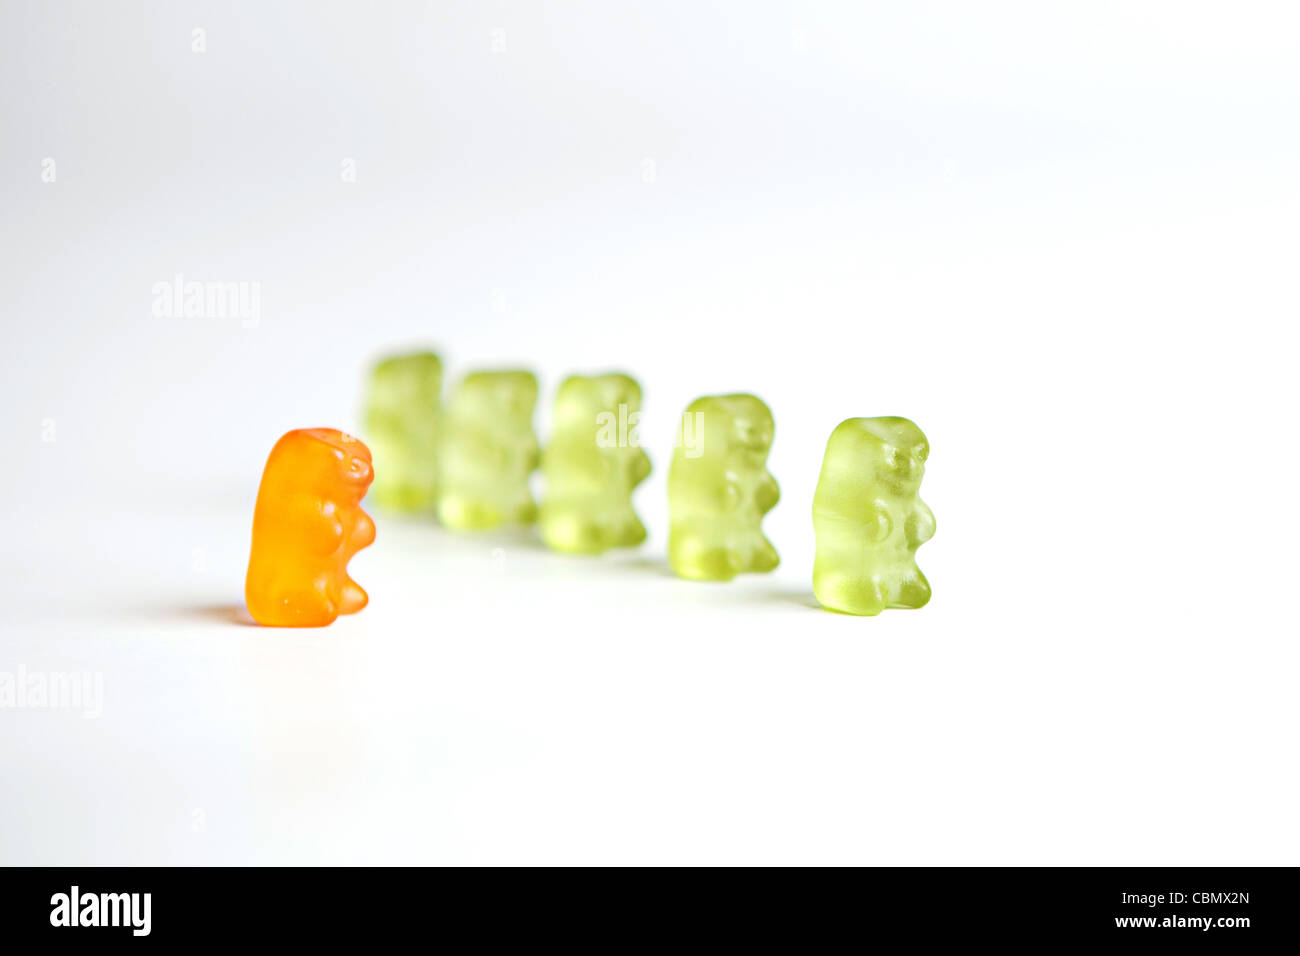 A row a green gummy bears with an 'odd one out' orange bear - Stock Image